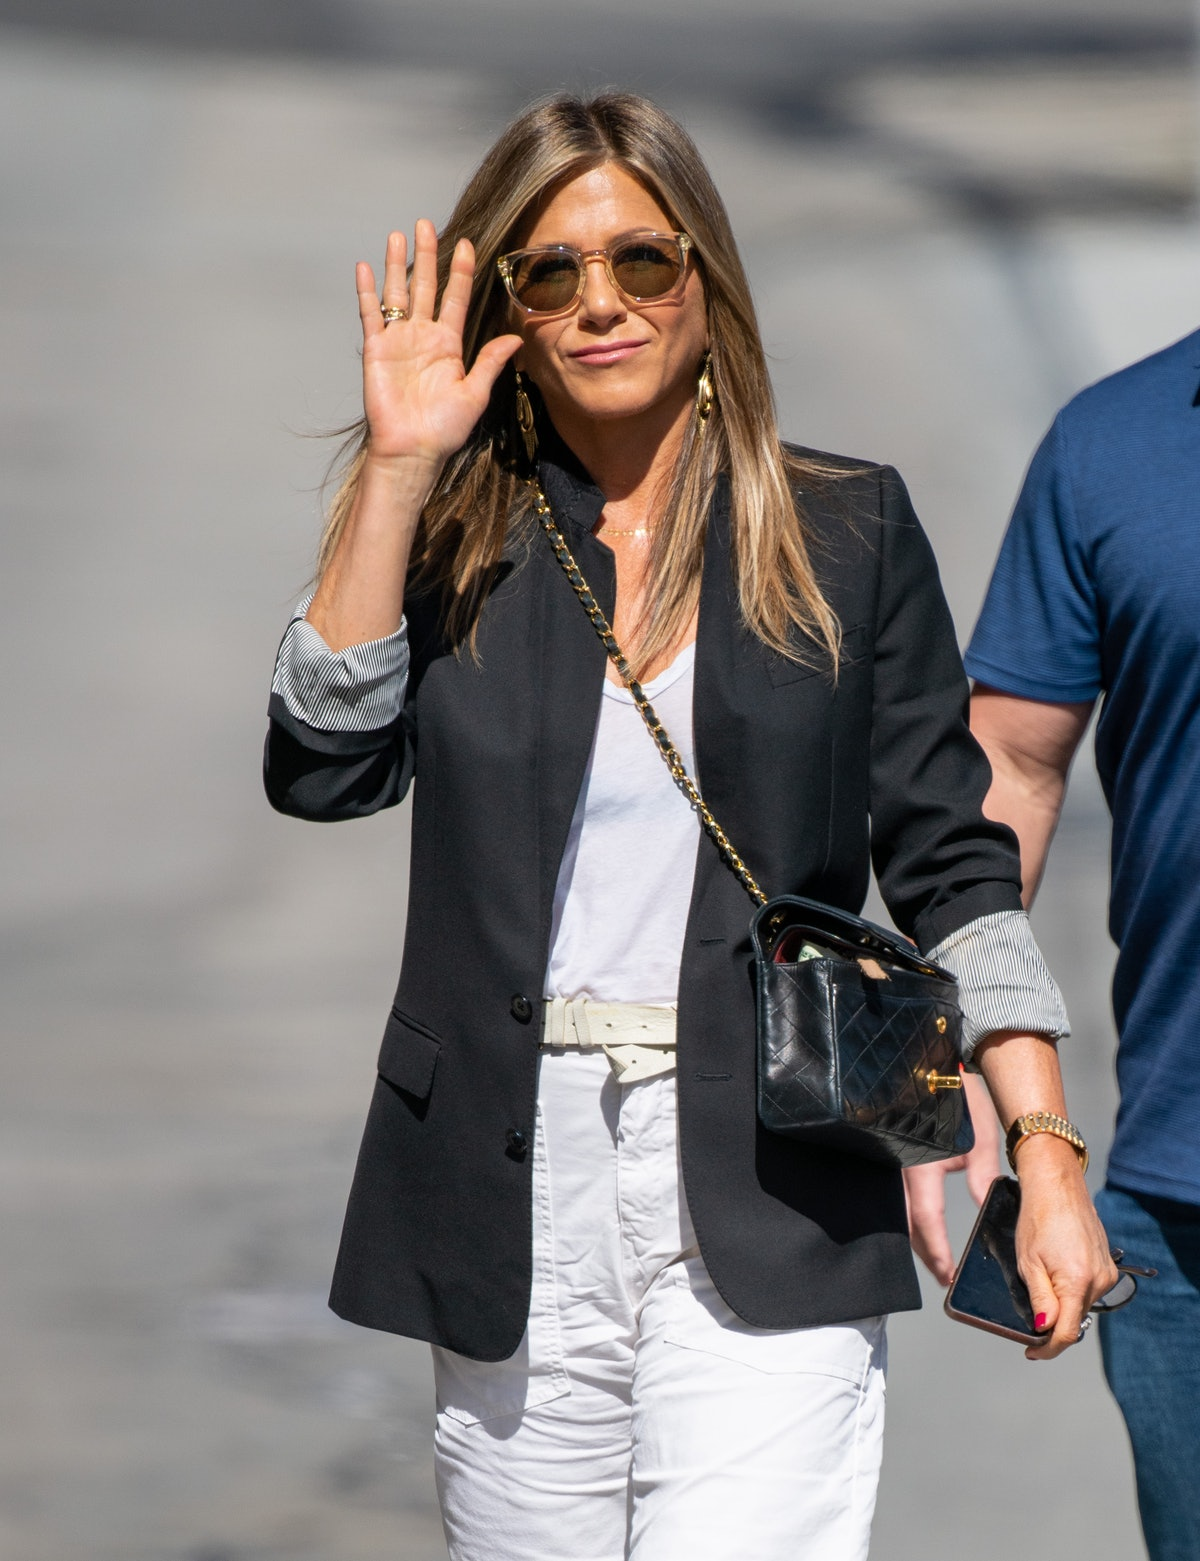 Jennifer Aniston is seen at 'Jimmy Kimmel Live' on May 29, 2019 in Los Angeles, California.